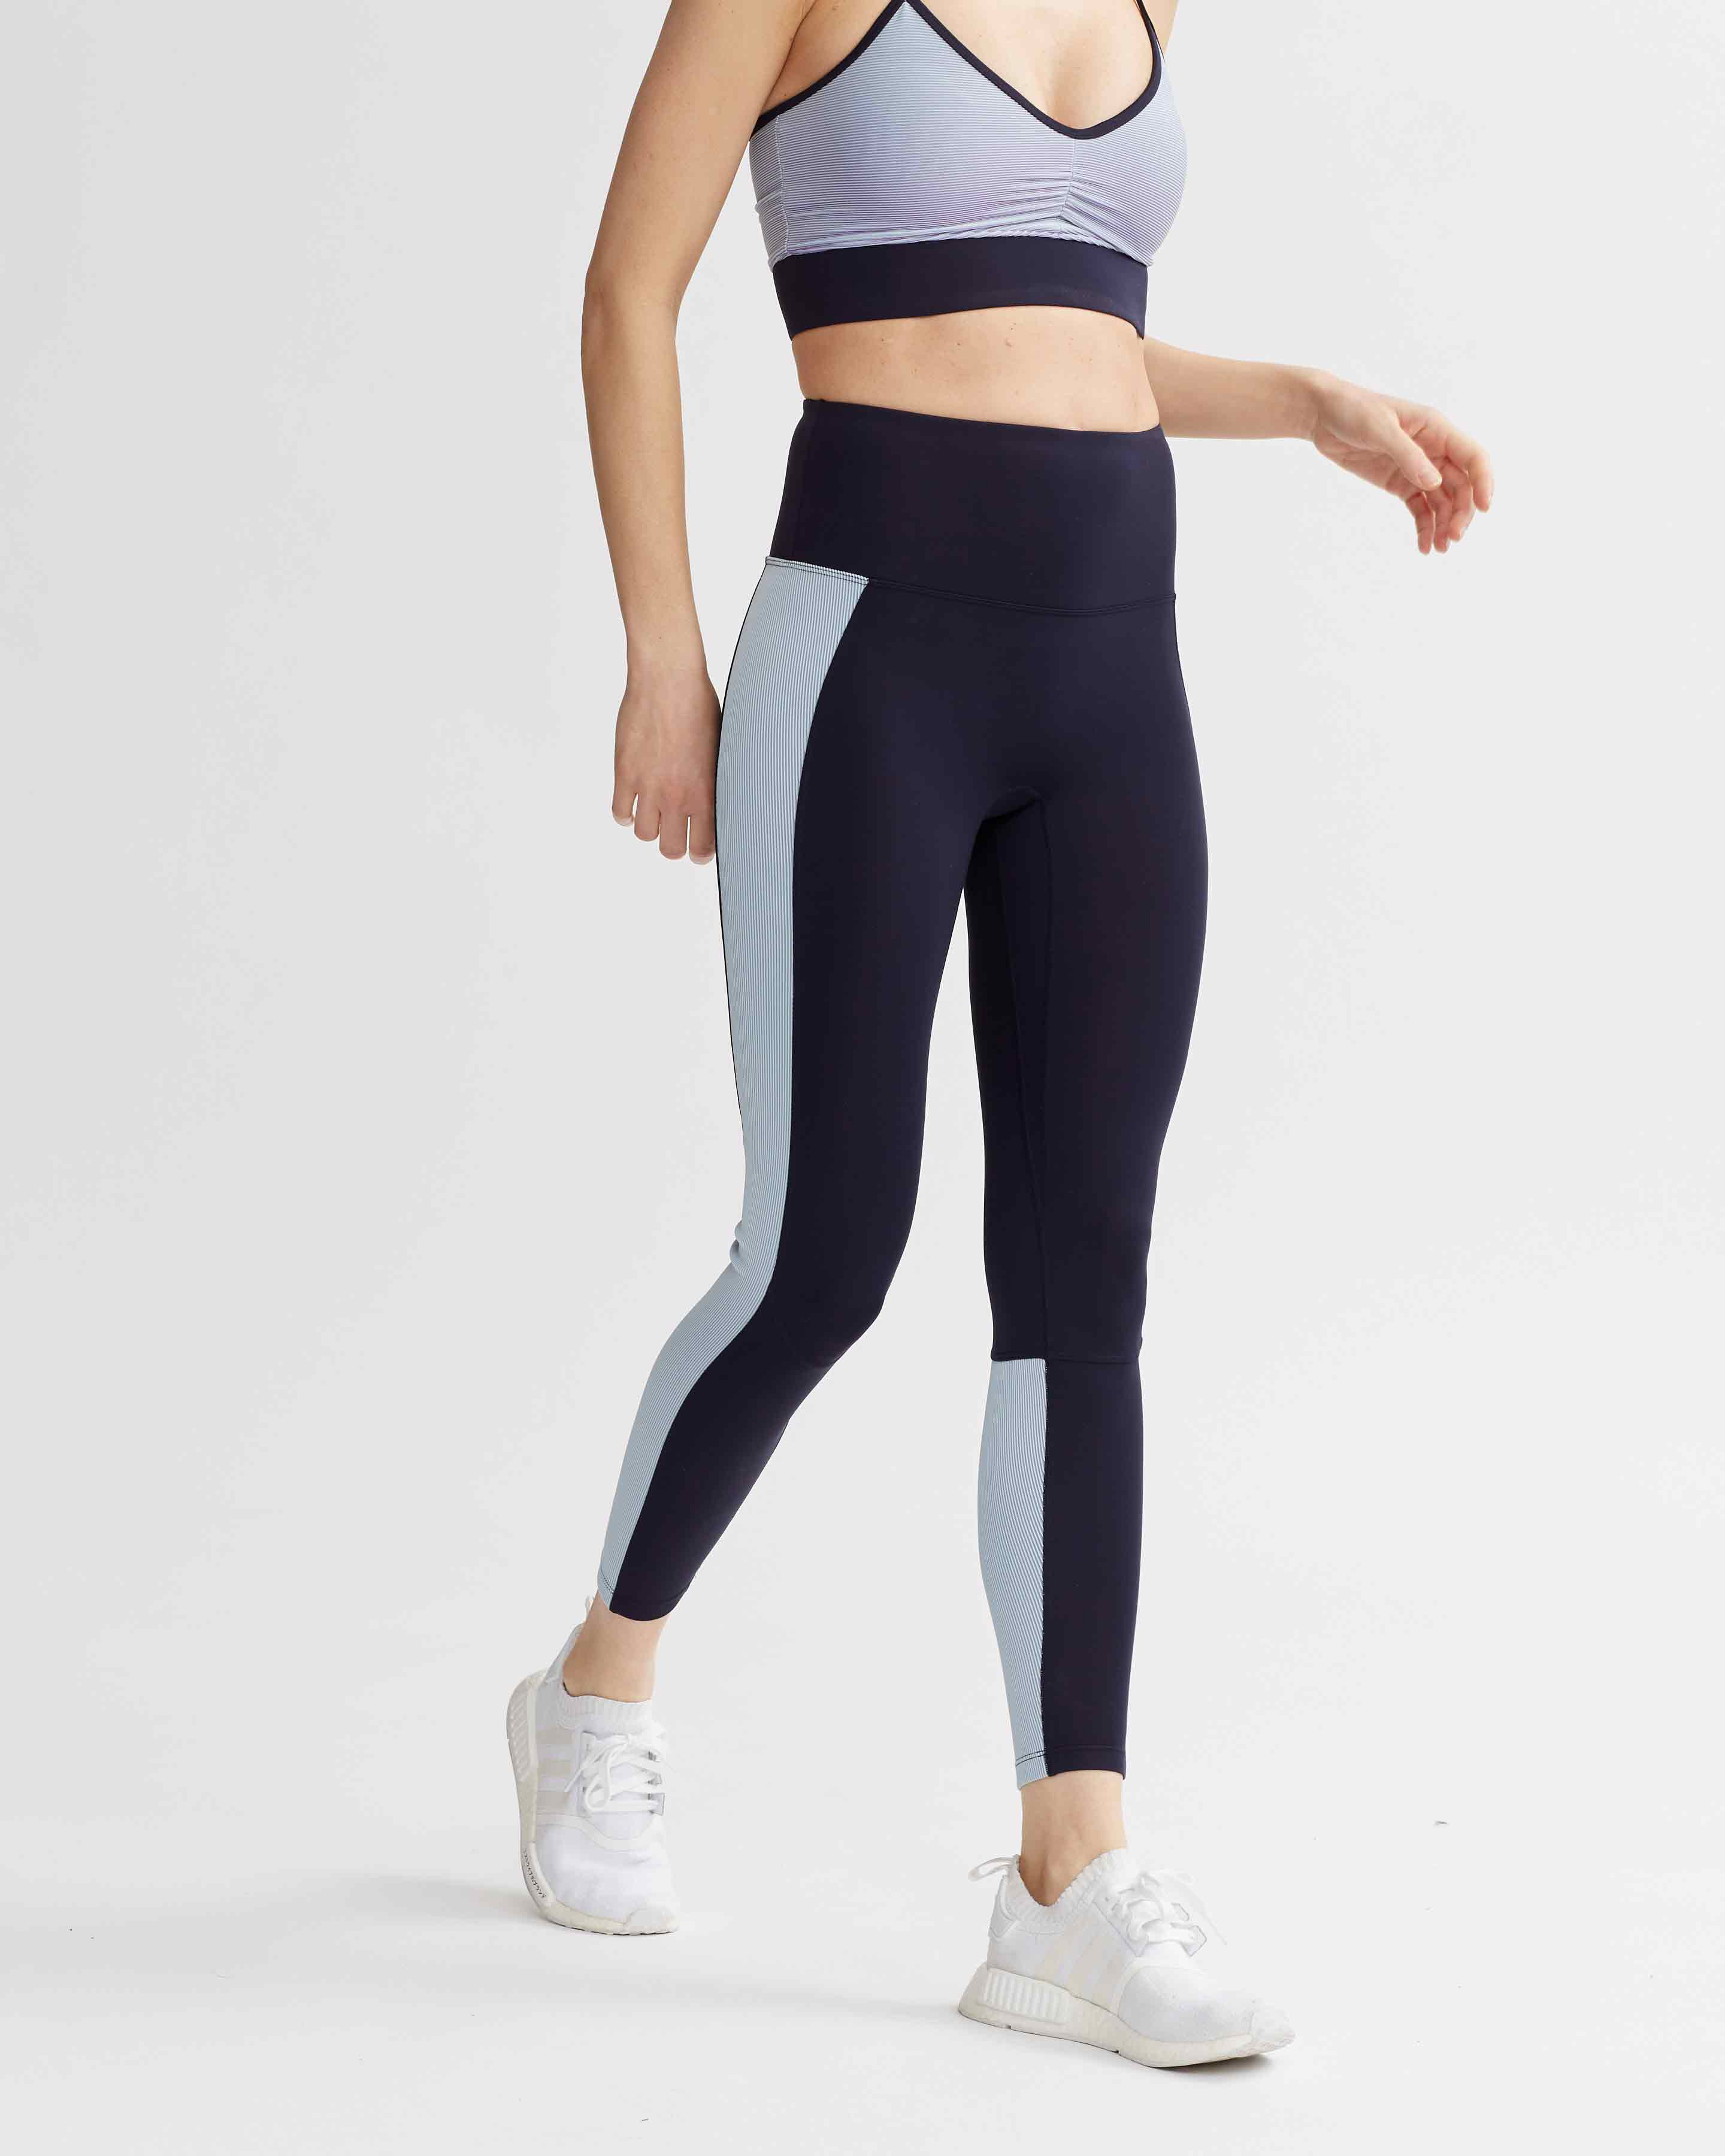 LEVEE LEGGINGS NAVY & IRIDESCENT PALE BLUE